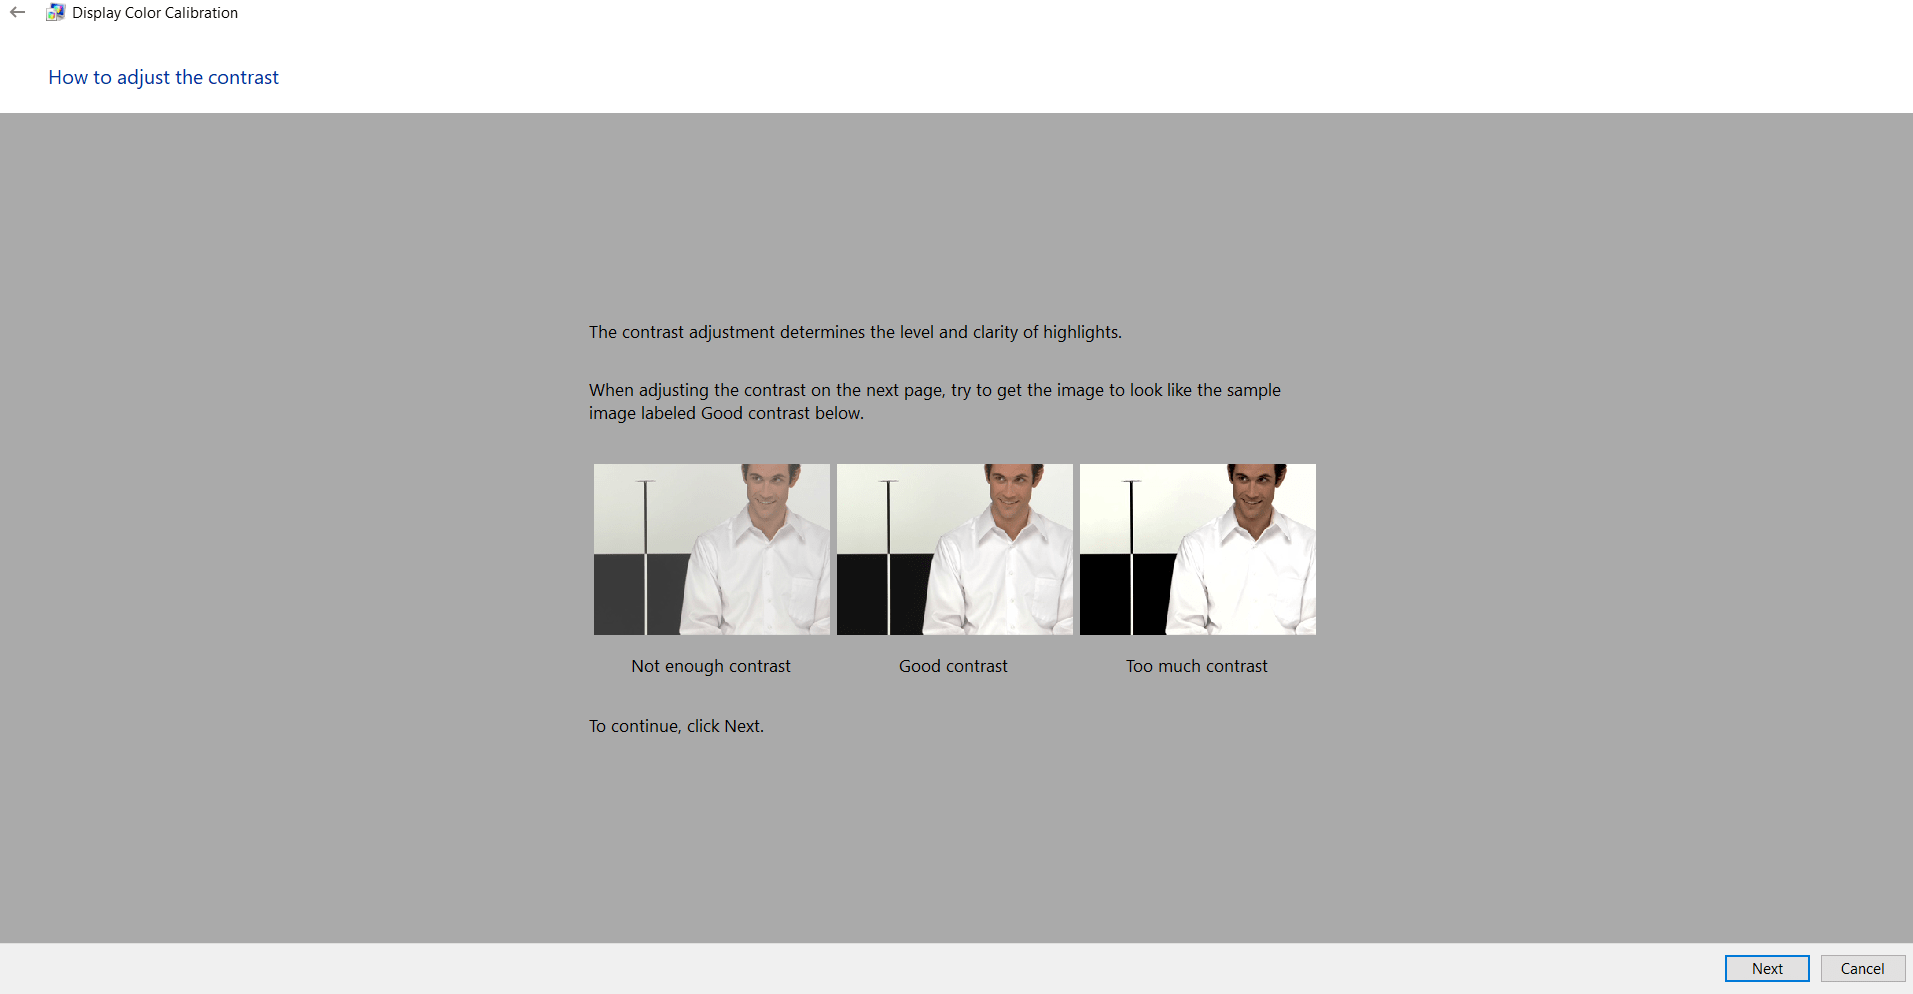 How to adjust the contrast in monitor